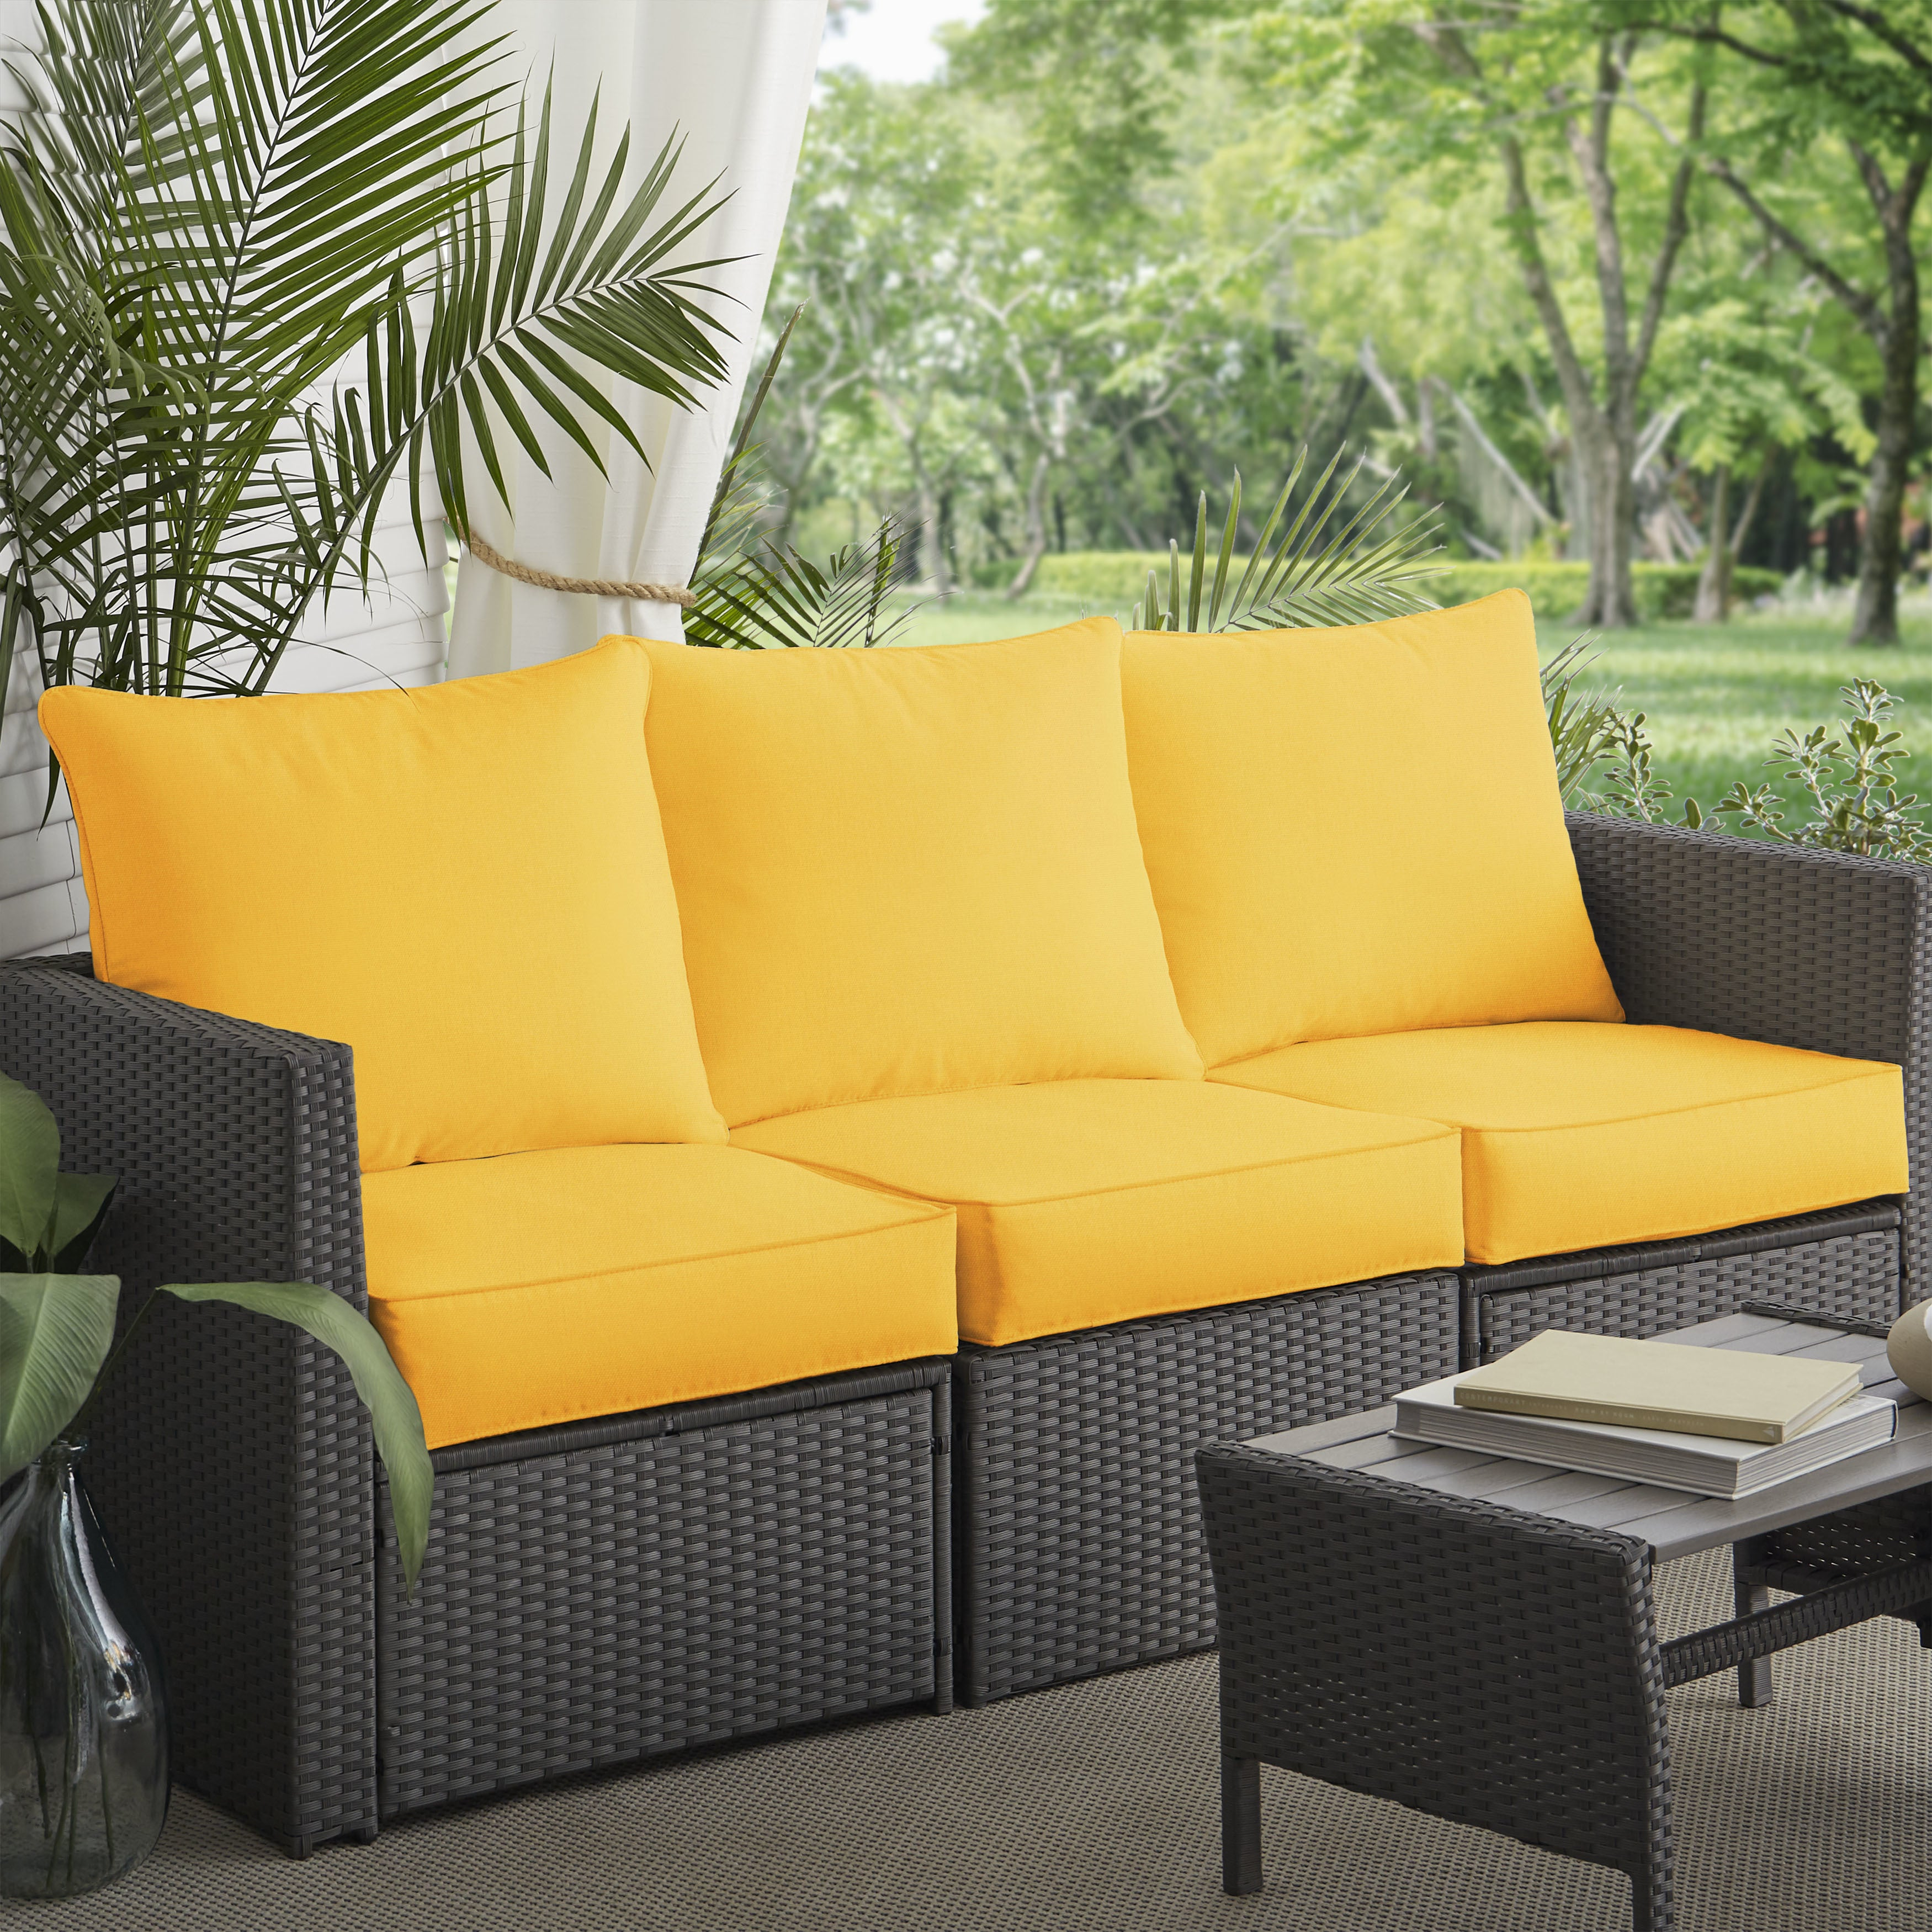 Clara Indoor Outdoor Wicker Sofa Cushion Set Made With Sunbrella Fabric On Free Shipping Today 5042924